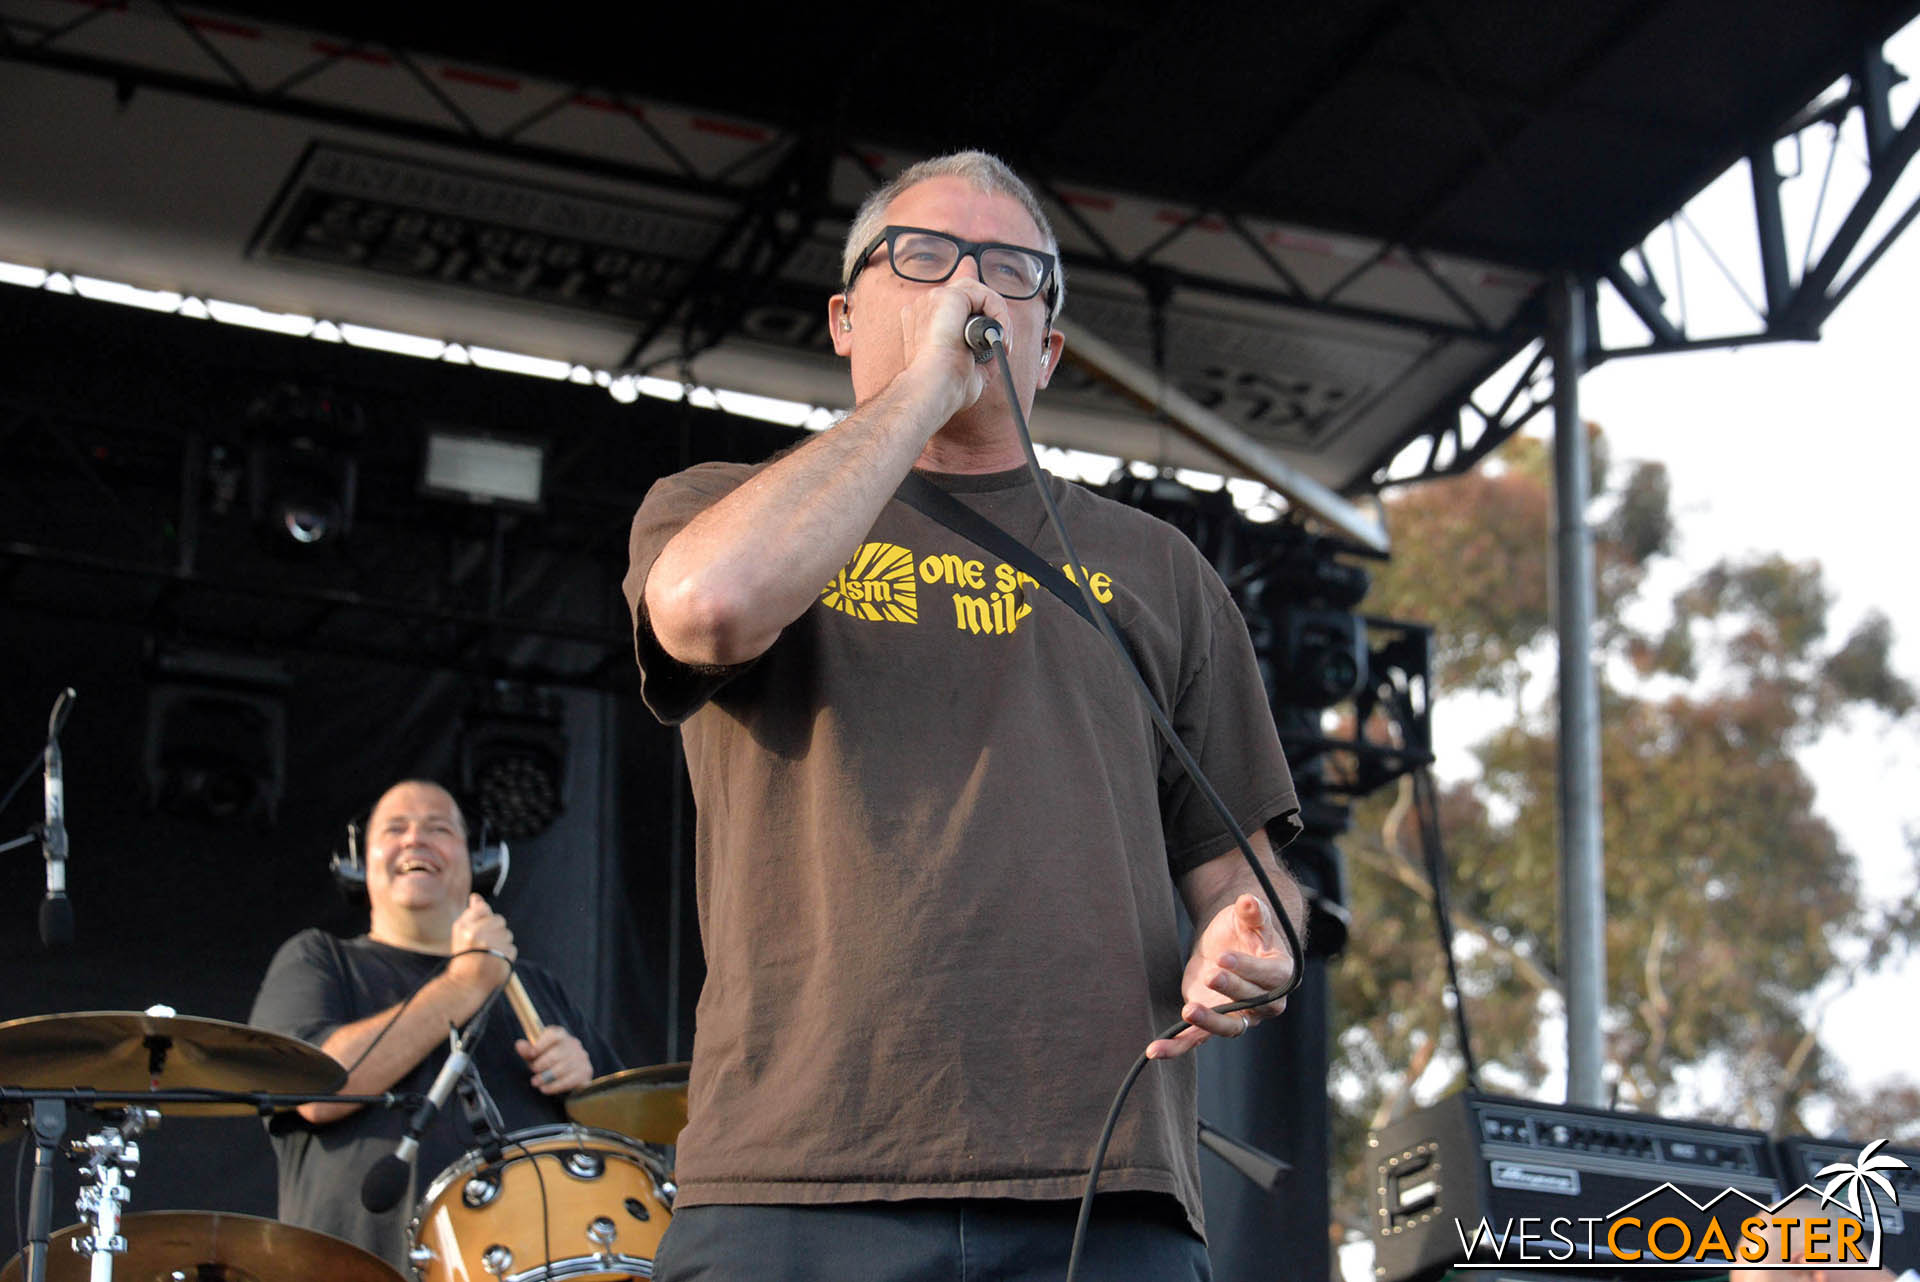 Sabroso-19_0410-F6-Descendents-0001.jpg